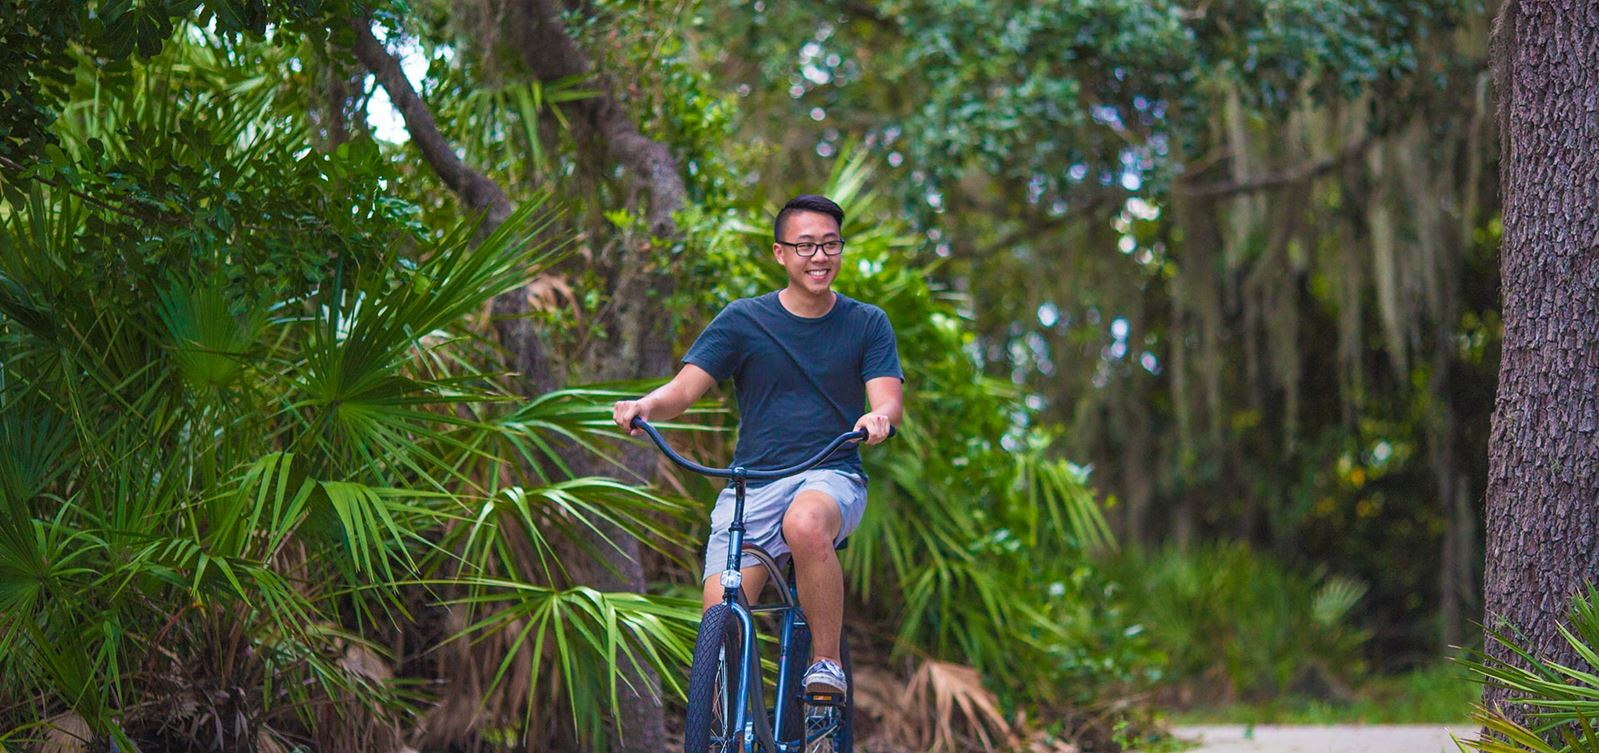 Man riding bicycle on wooded boardwalk trail in Waterset.